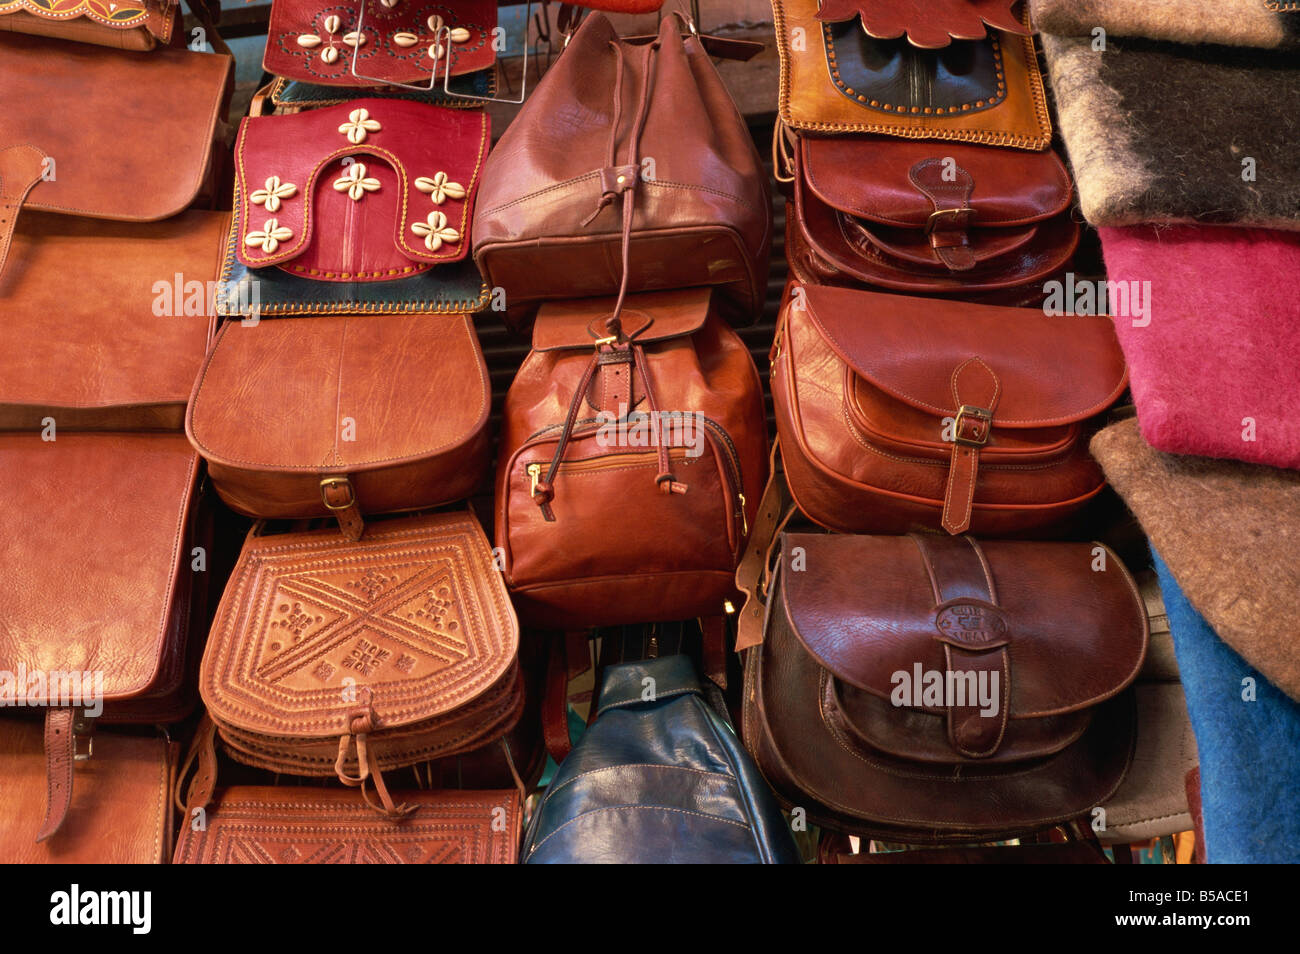 Leather goods on sale in souks Medina Marrakech Morocco North Africa Africa - Stock Image